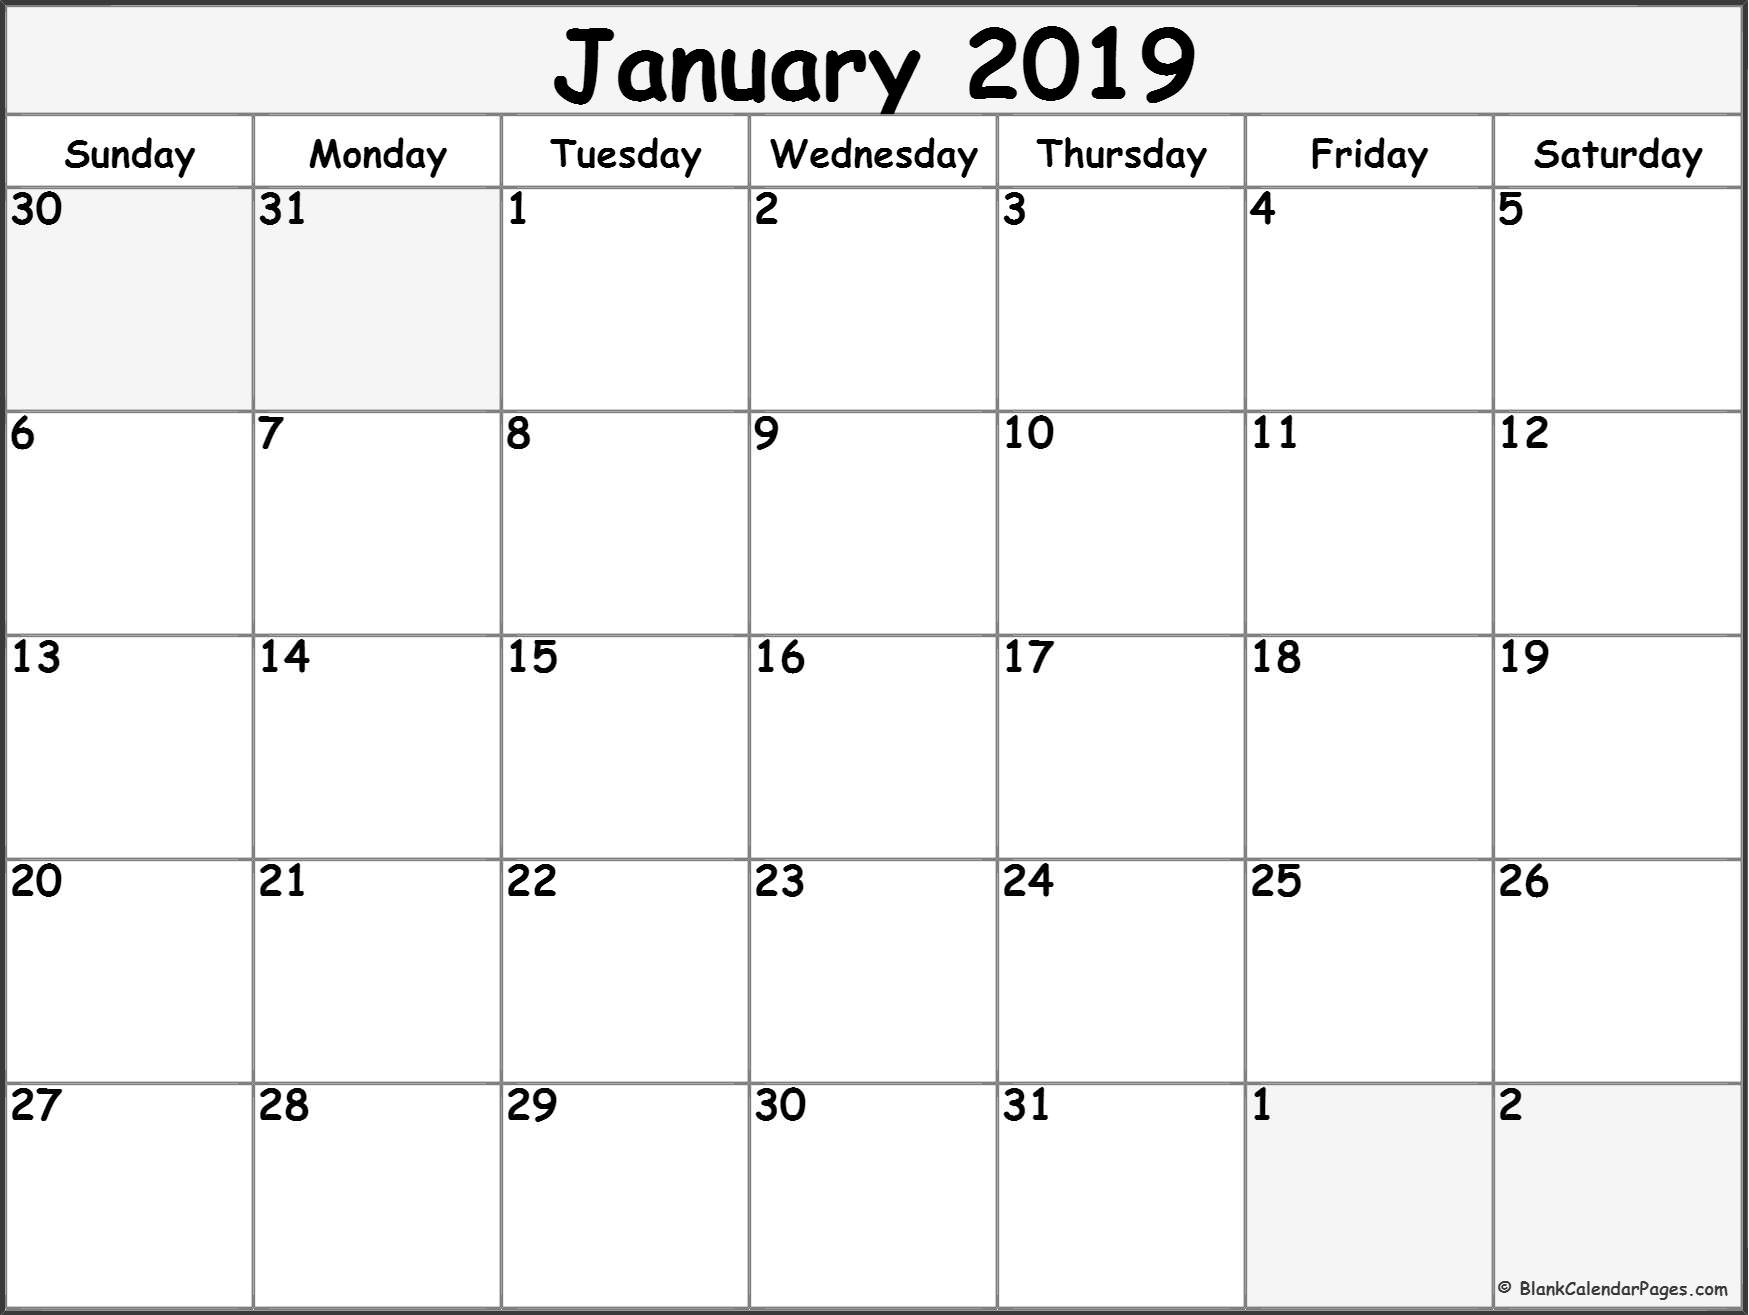 Free Blank Calendars 2019 January 2019 Free Printable Blank Calendar Collection. with